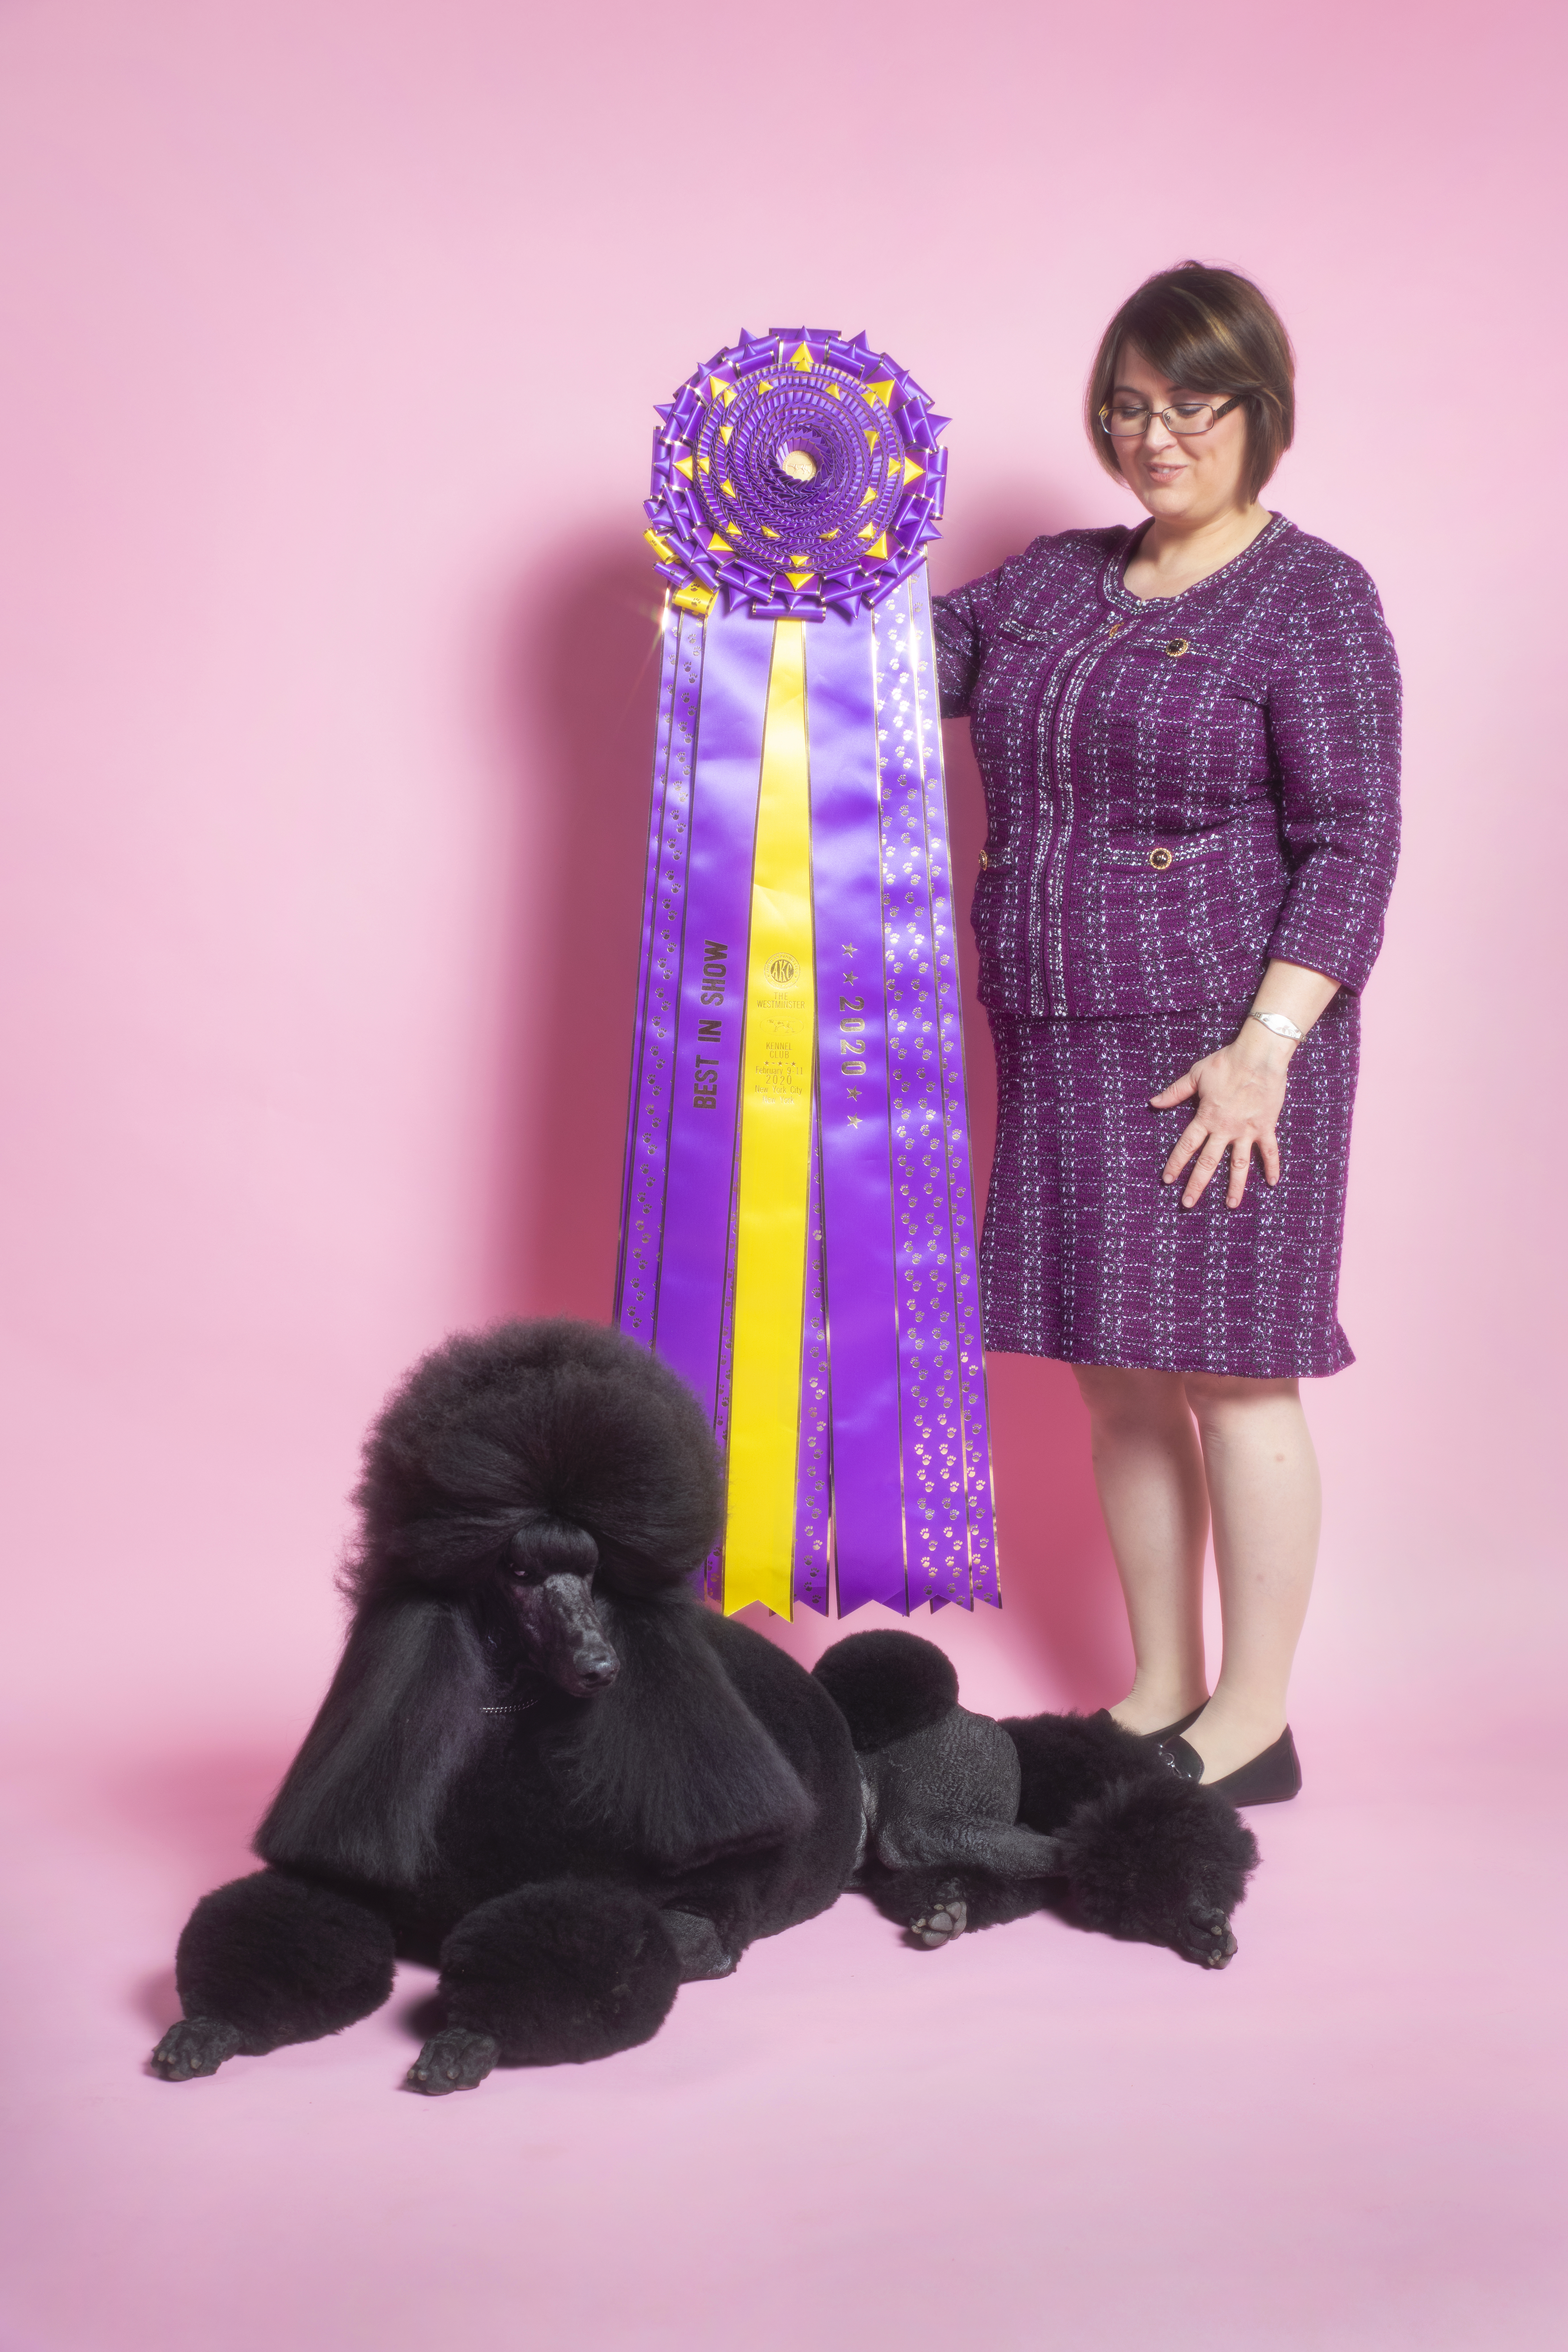 Siba the Standard Poodle poses for a portrait at the TIME studio on Feb. 12